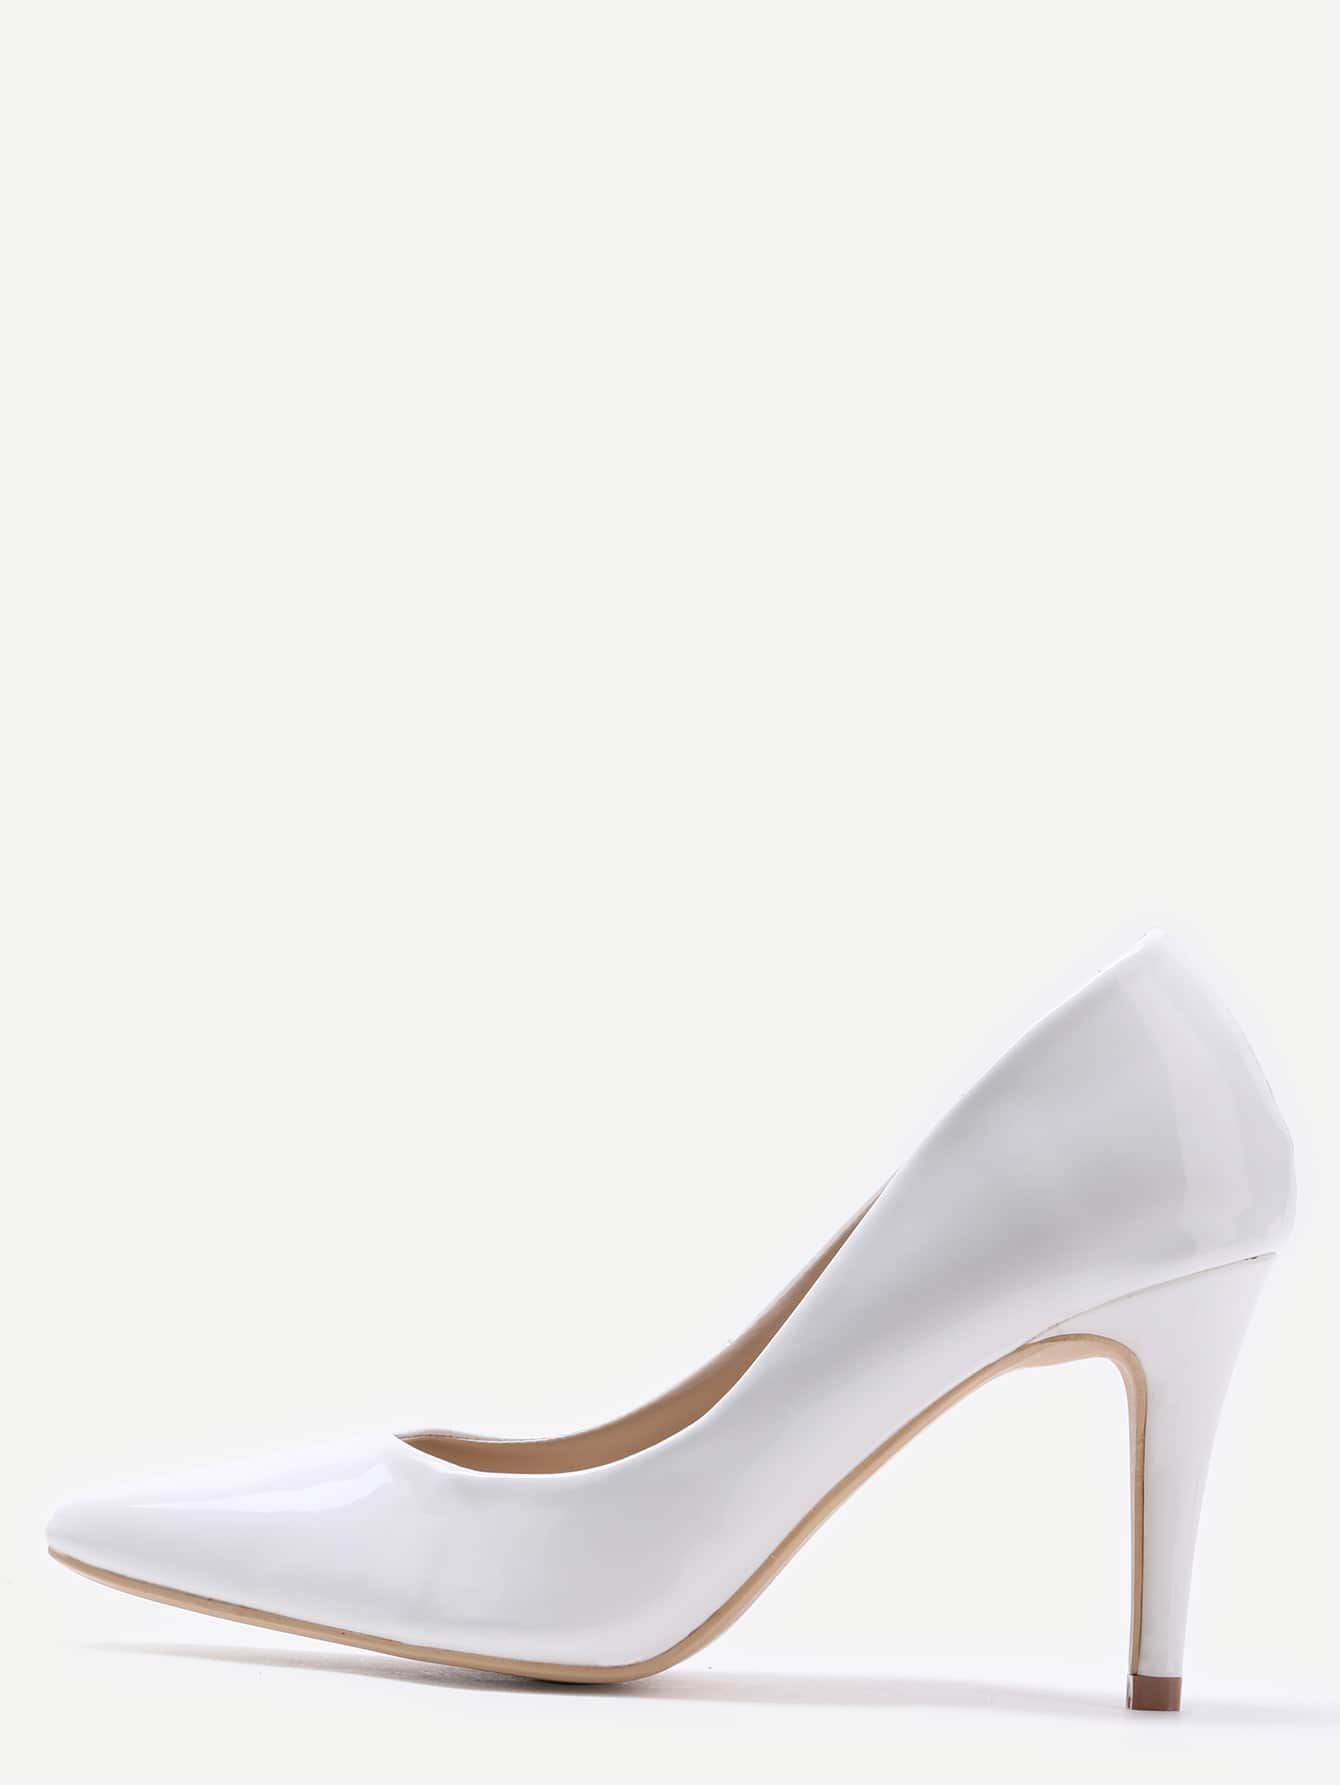 White Faux Patent Leather Pointed Toe PumpsWhite Faux Patent Leather Pointed Toe Pumps<br><br>color: White<br>size: US6.5,US6,US7.5,US7,US8